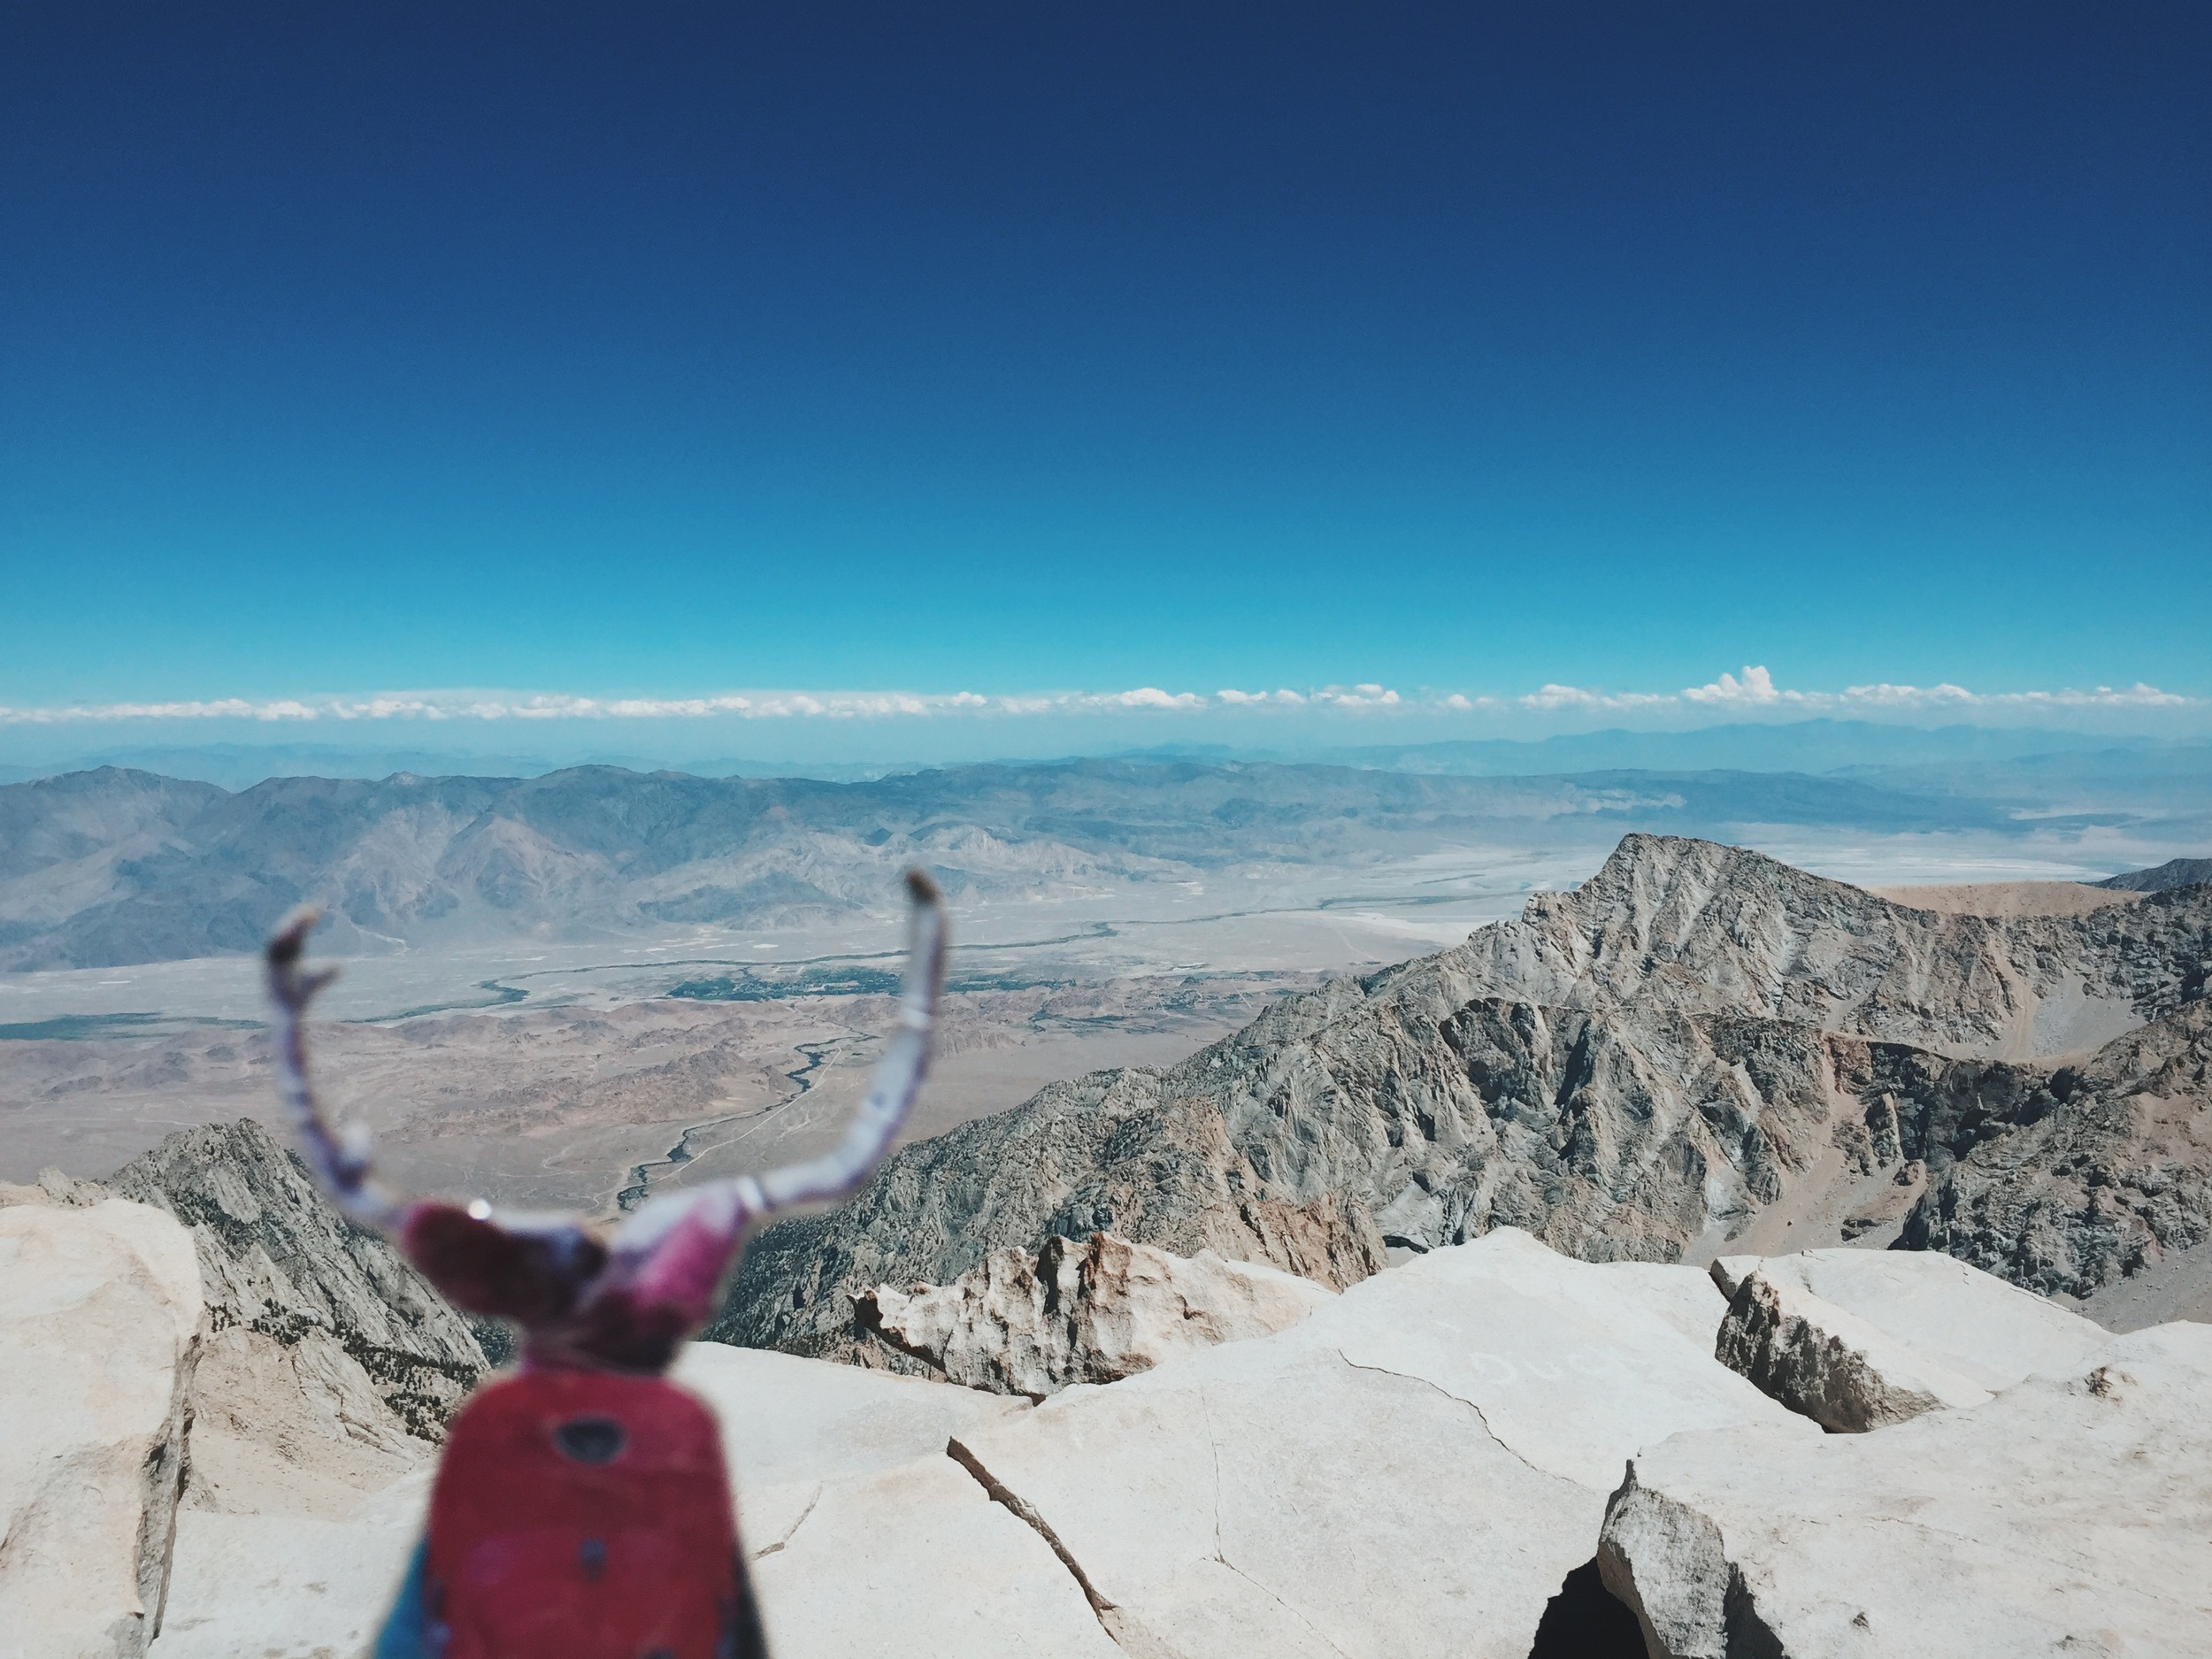 Jed couldn't get enough of the views from the summit.